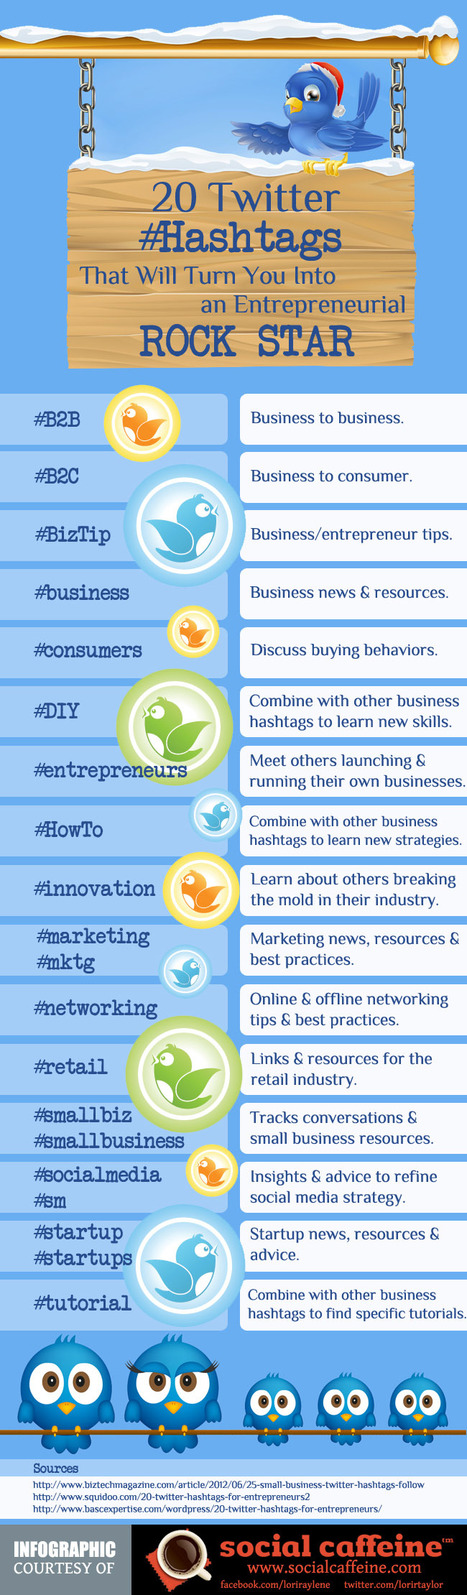 20 Twitter Hashtags That Will Turn You Into an Entrepreneurial Rock Star (Infographic) | MarketingHits | Scoop.it